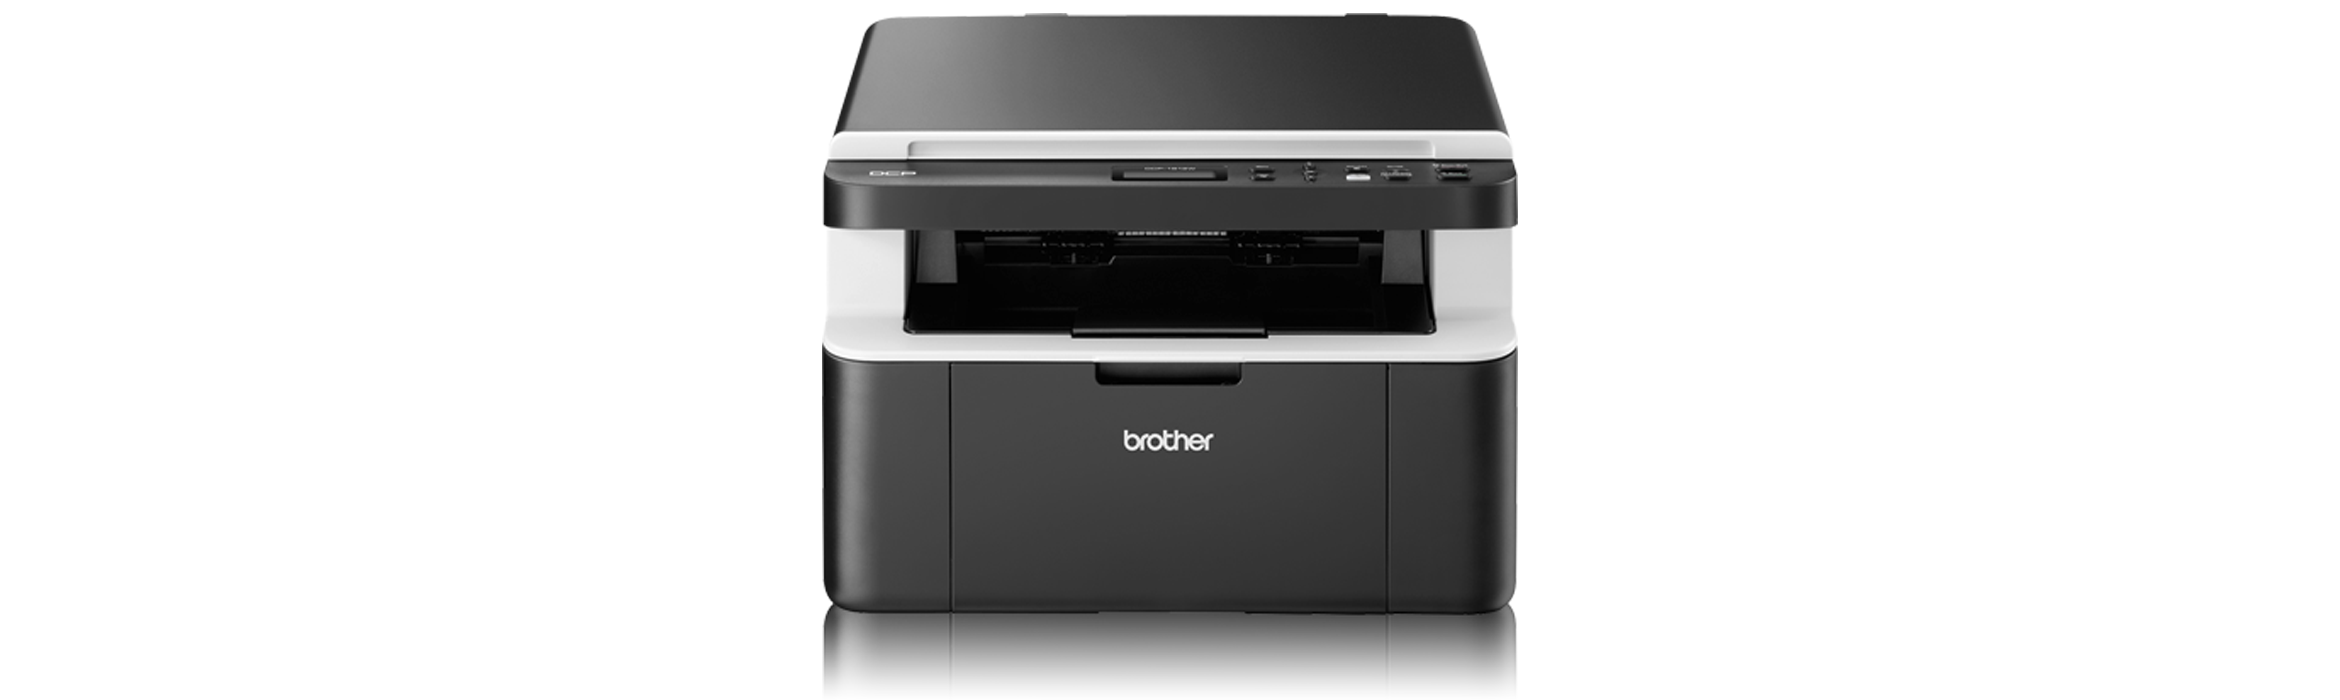 Brother DCP-1612W wireless compact mono laser printer front view